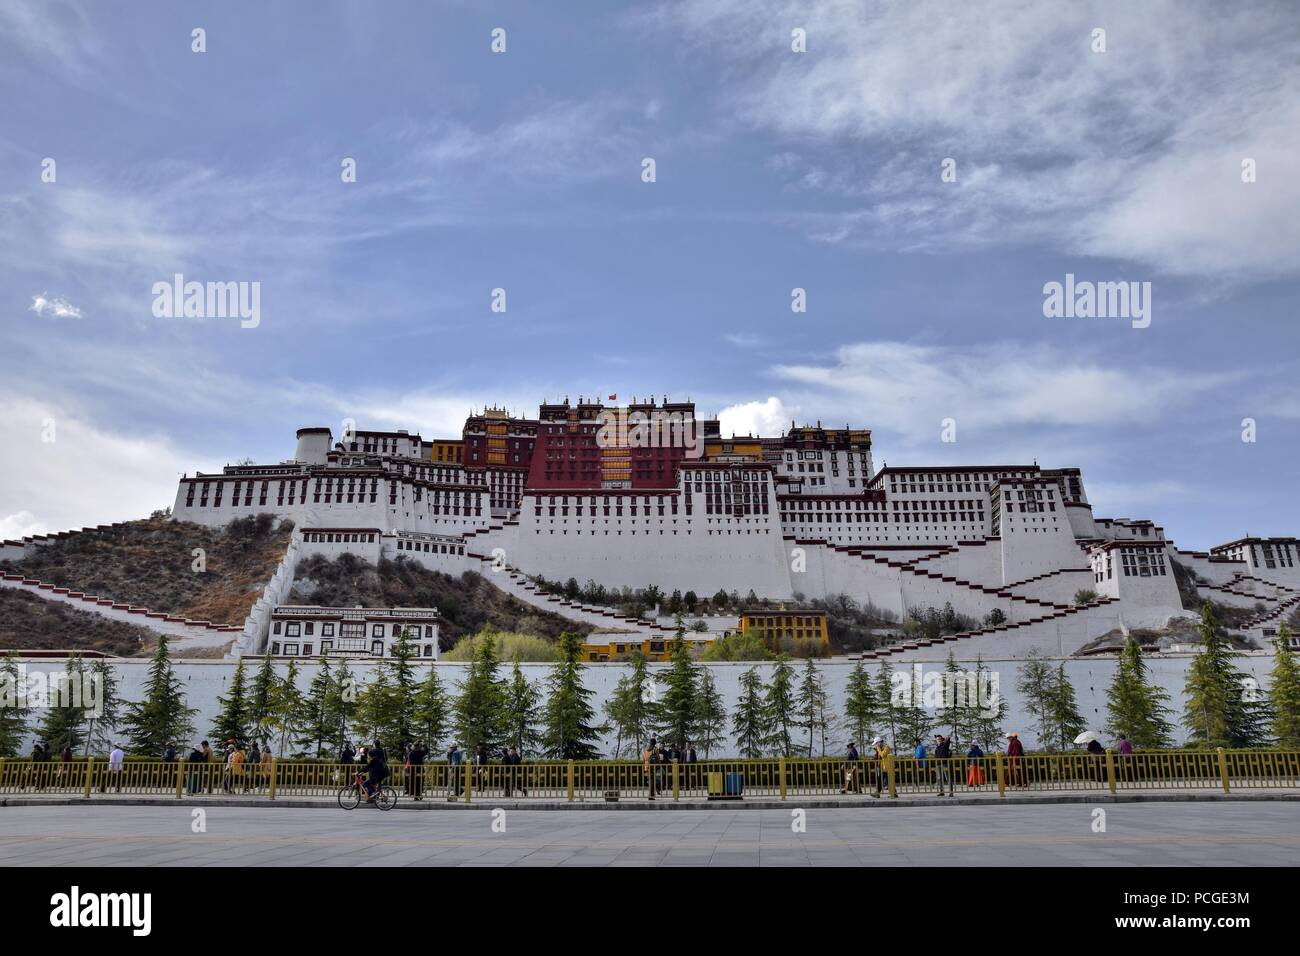 The Potala Palace in Lhasa, Tibet Autonomous Region, China. - Stock Image